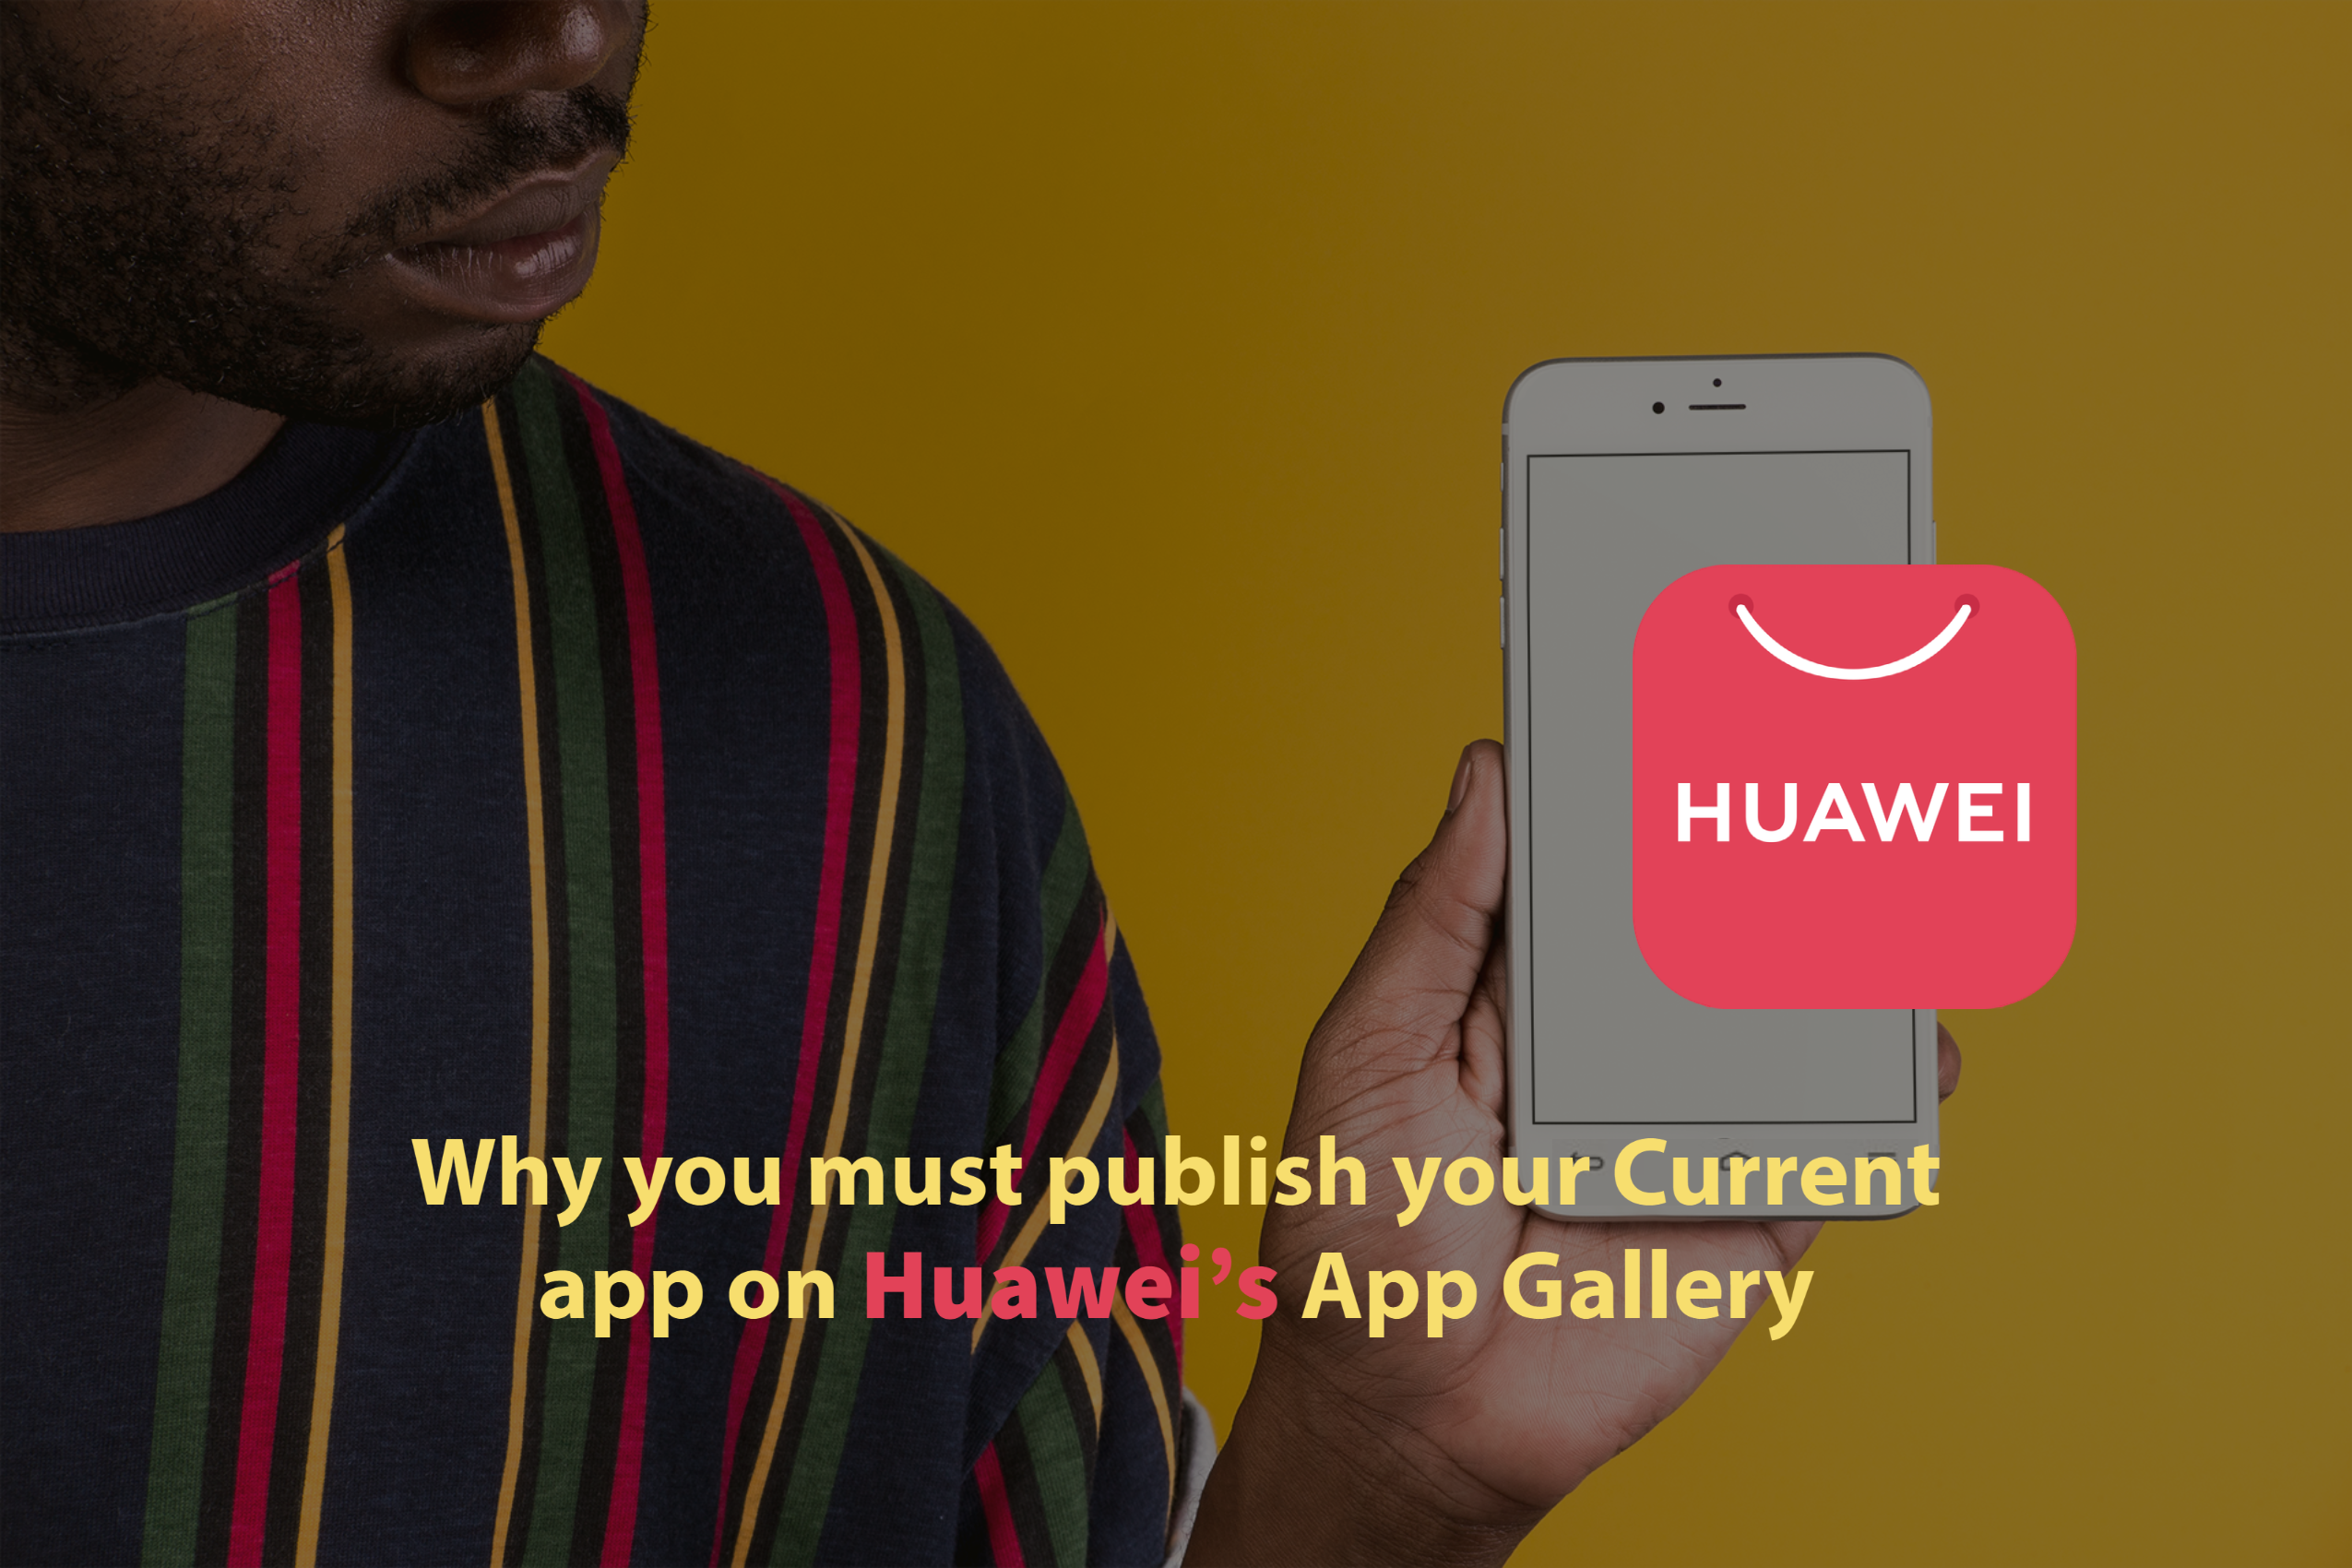 Why you must publish your Current app on Huawei's App Gallery